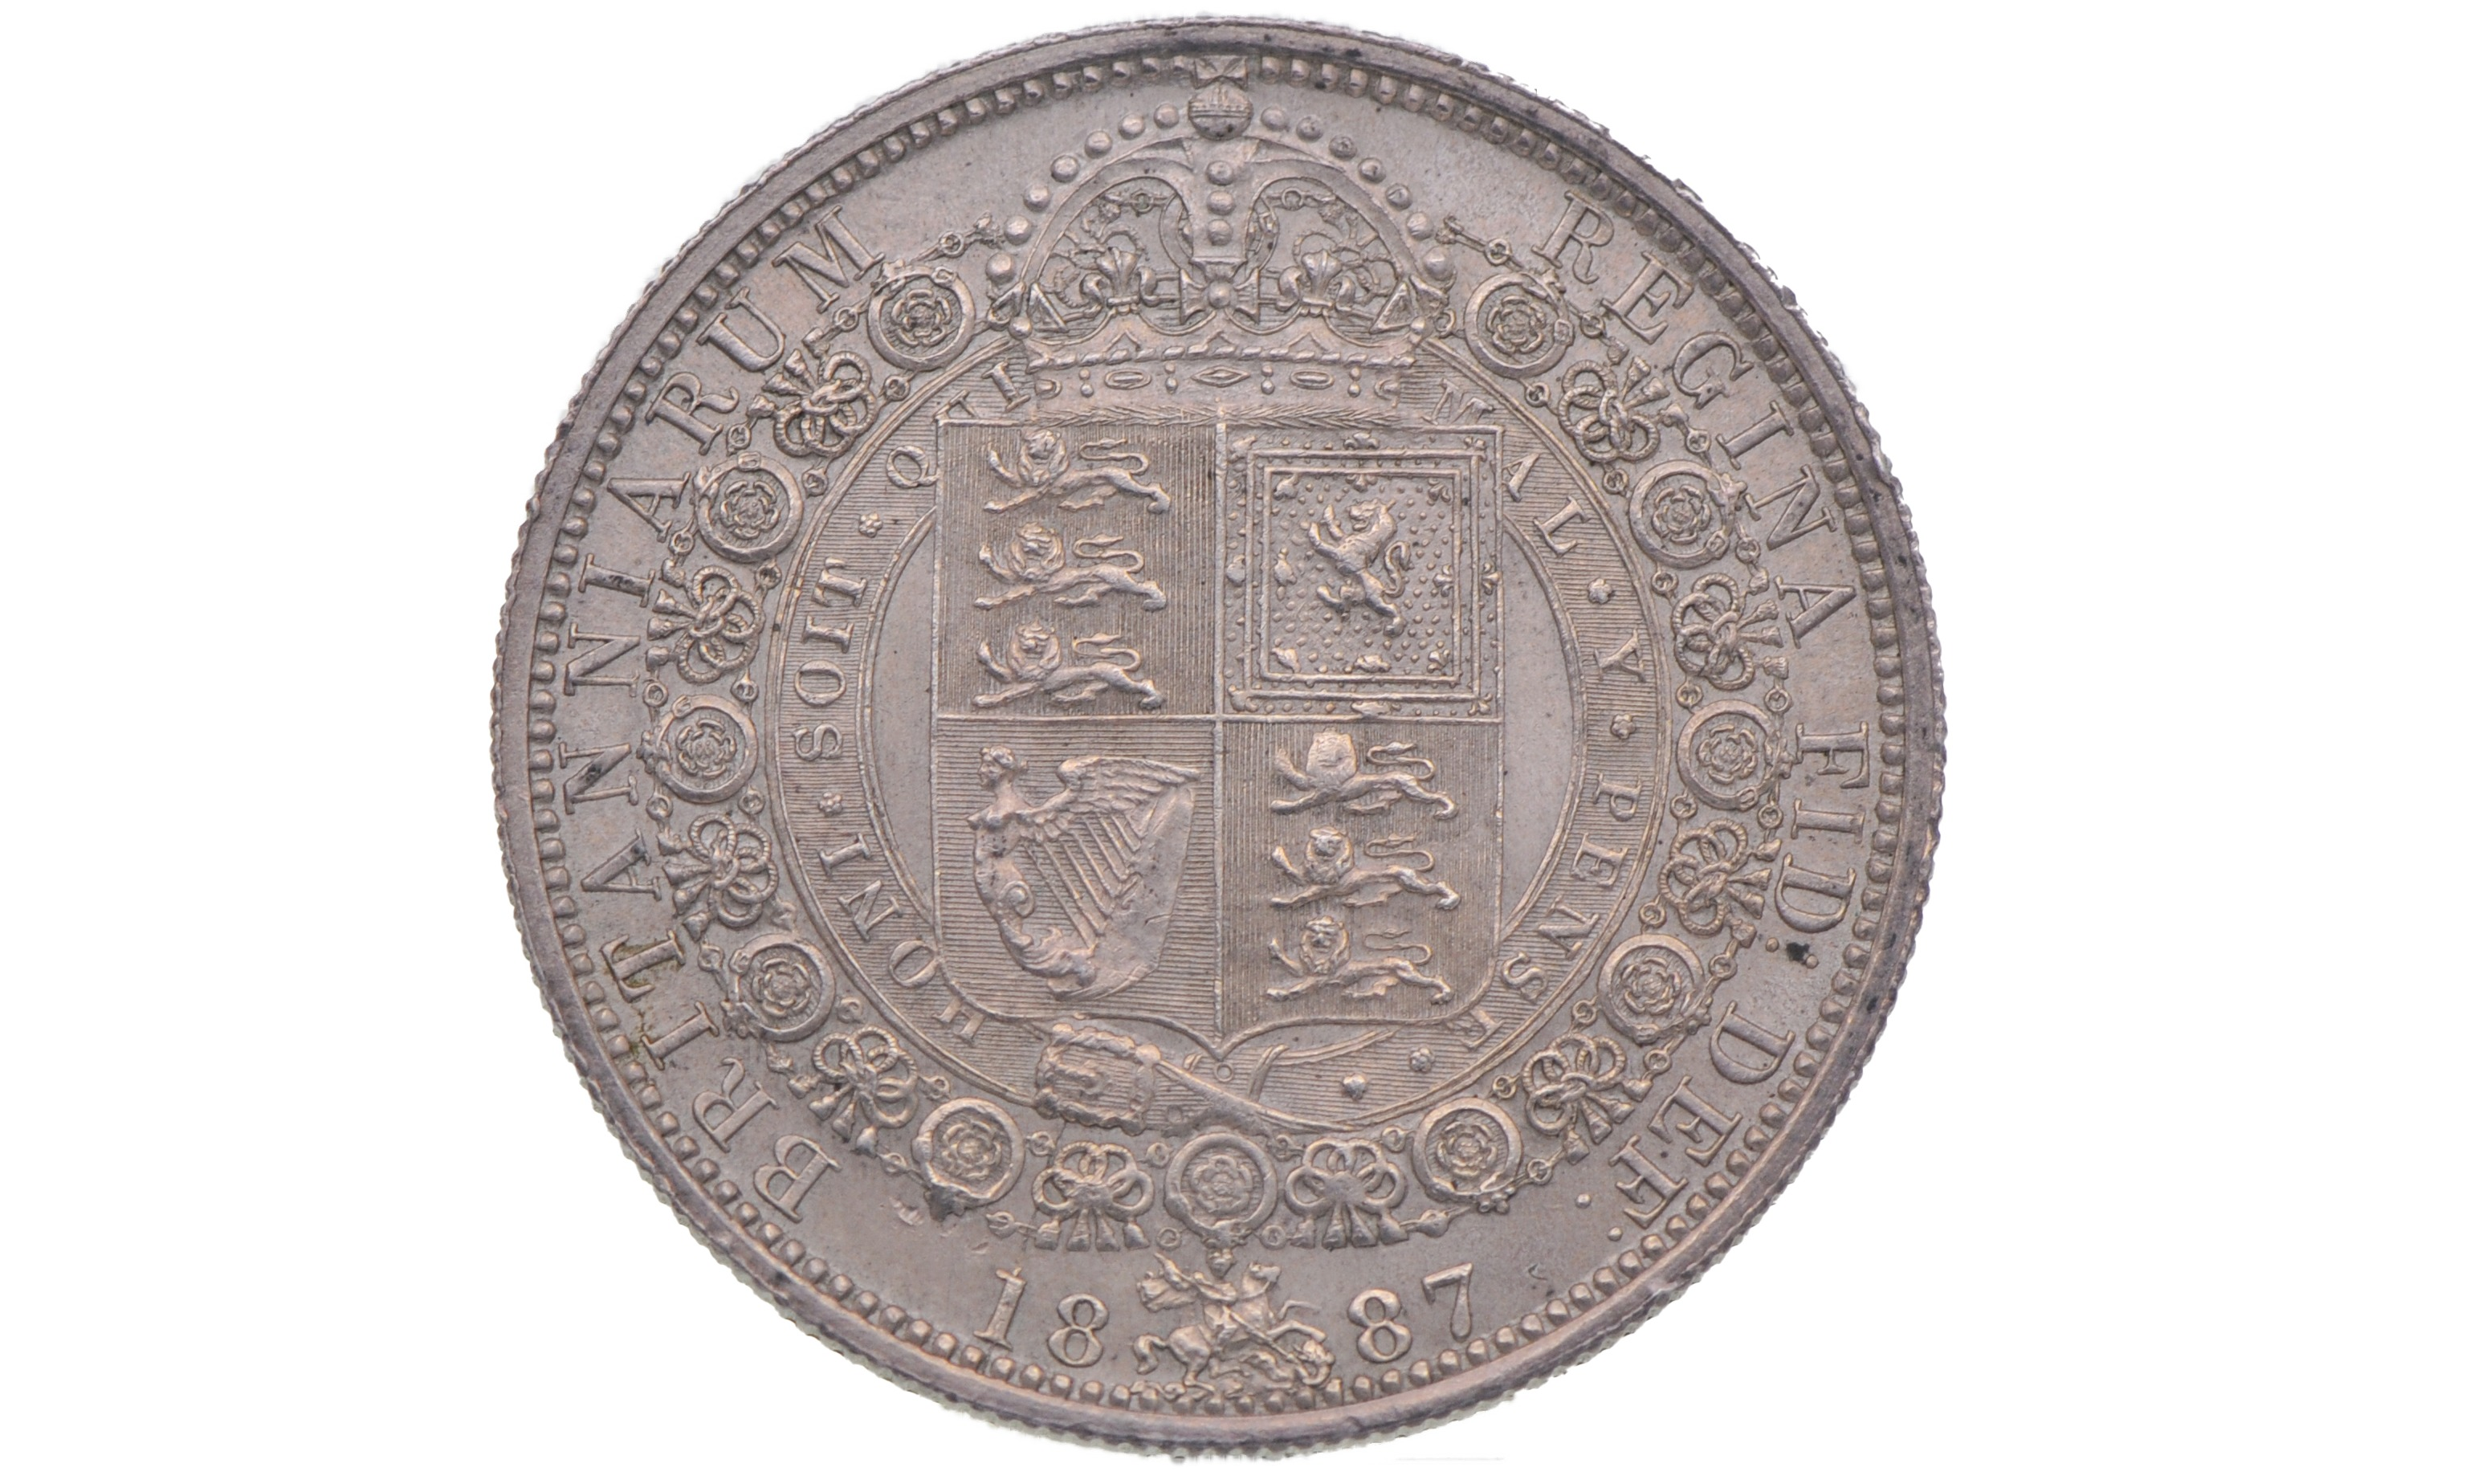 A half Crown dating back before 1920 is estimated to be worth around £6.88